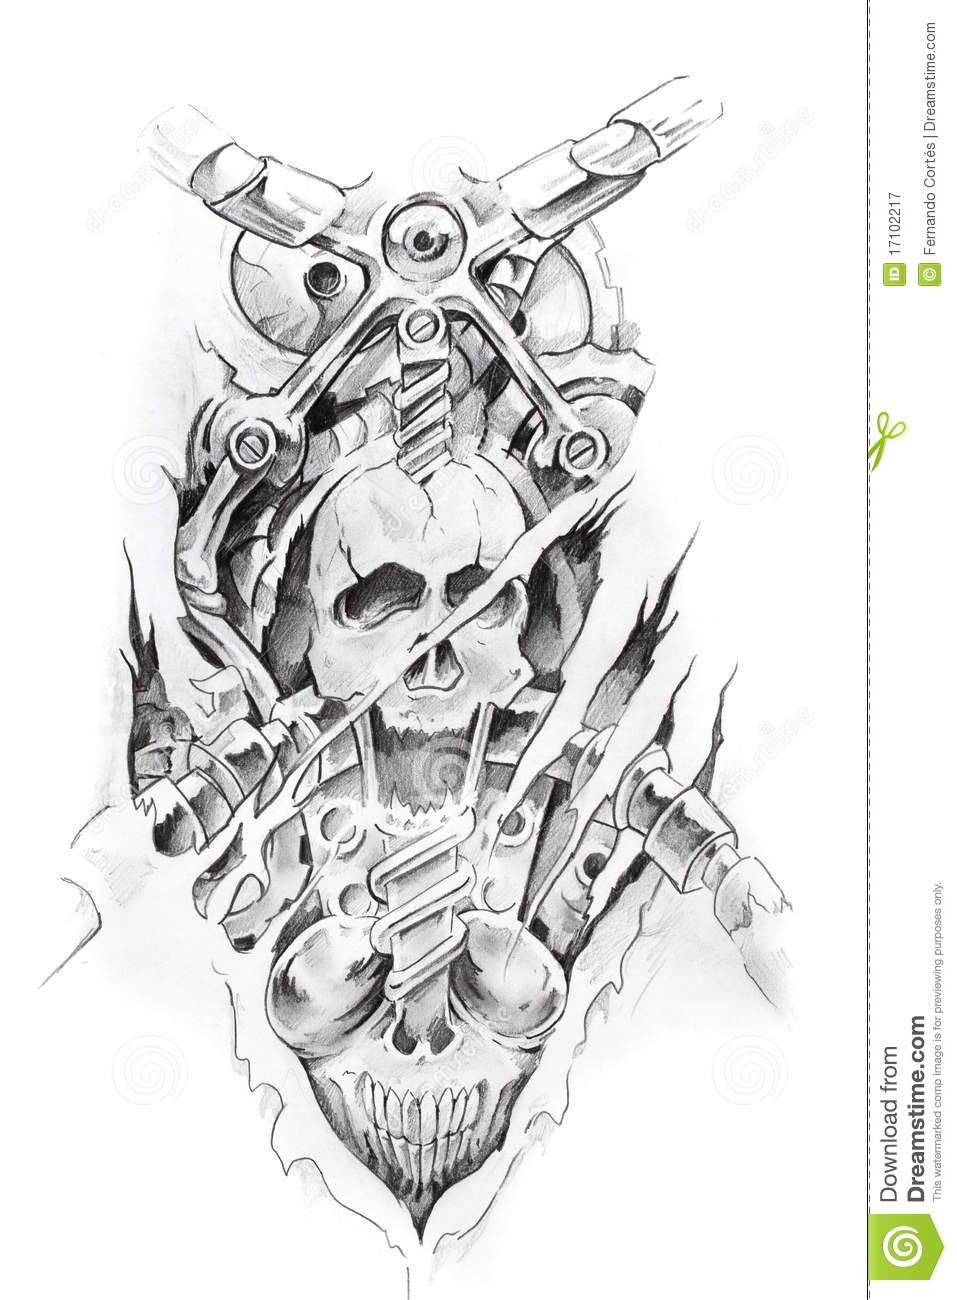 Art De Tatouage Croquis Dune Machine Photographie Stock Libre